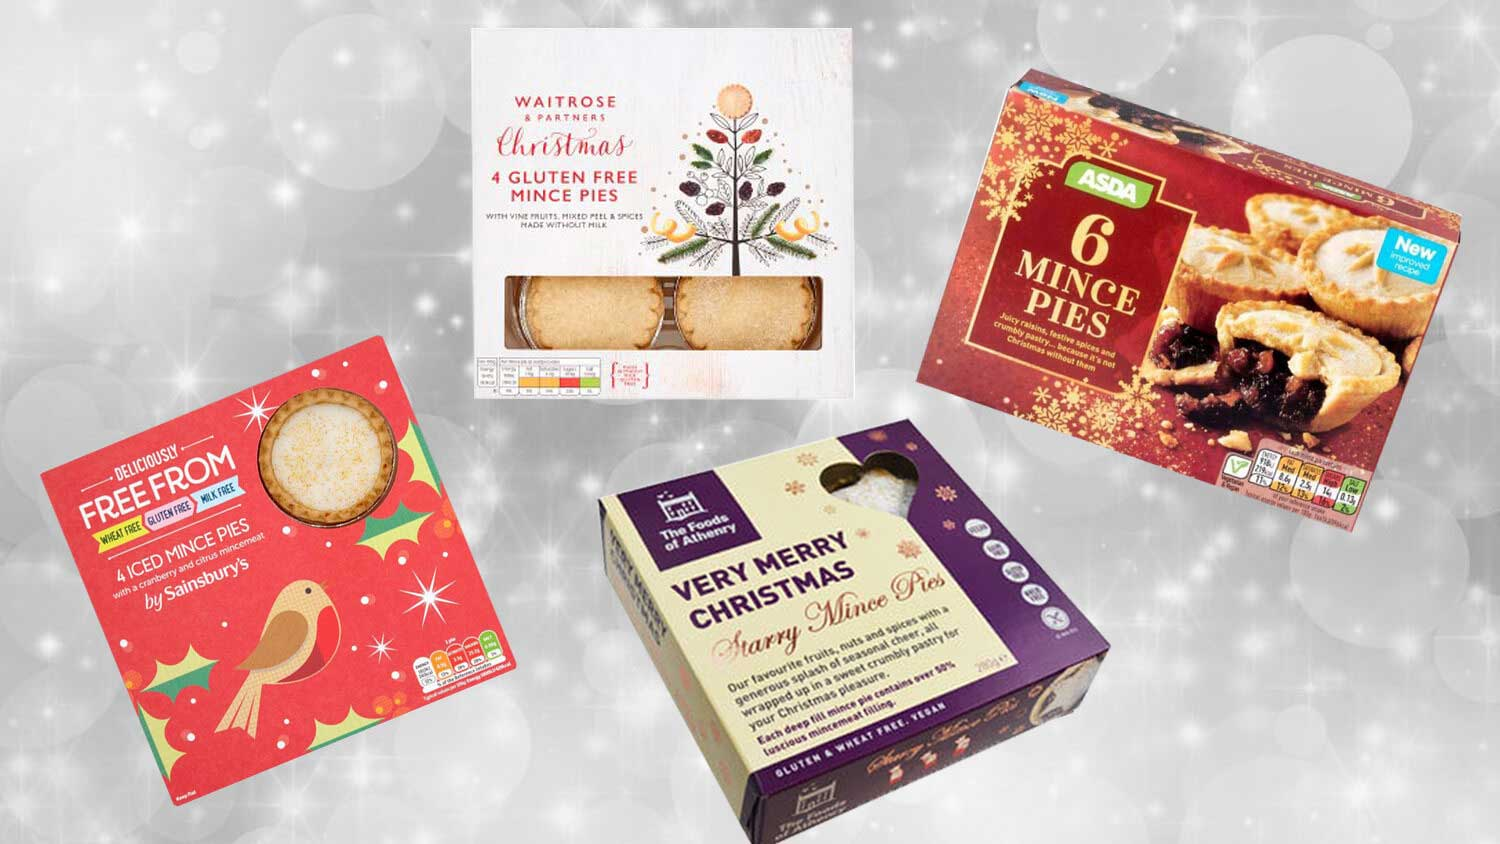 7 Vegan Mince Pies Available in the UK This Christmas Season